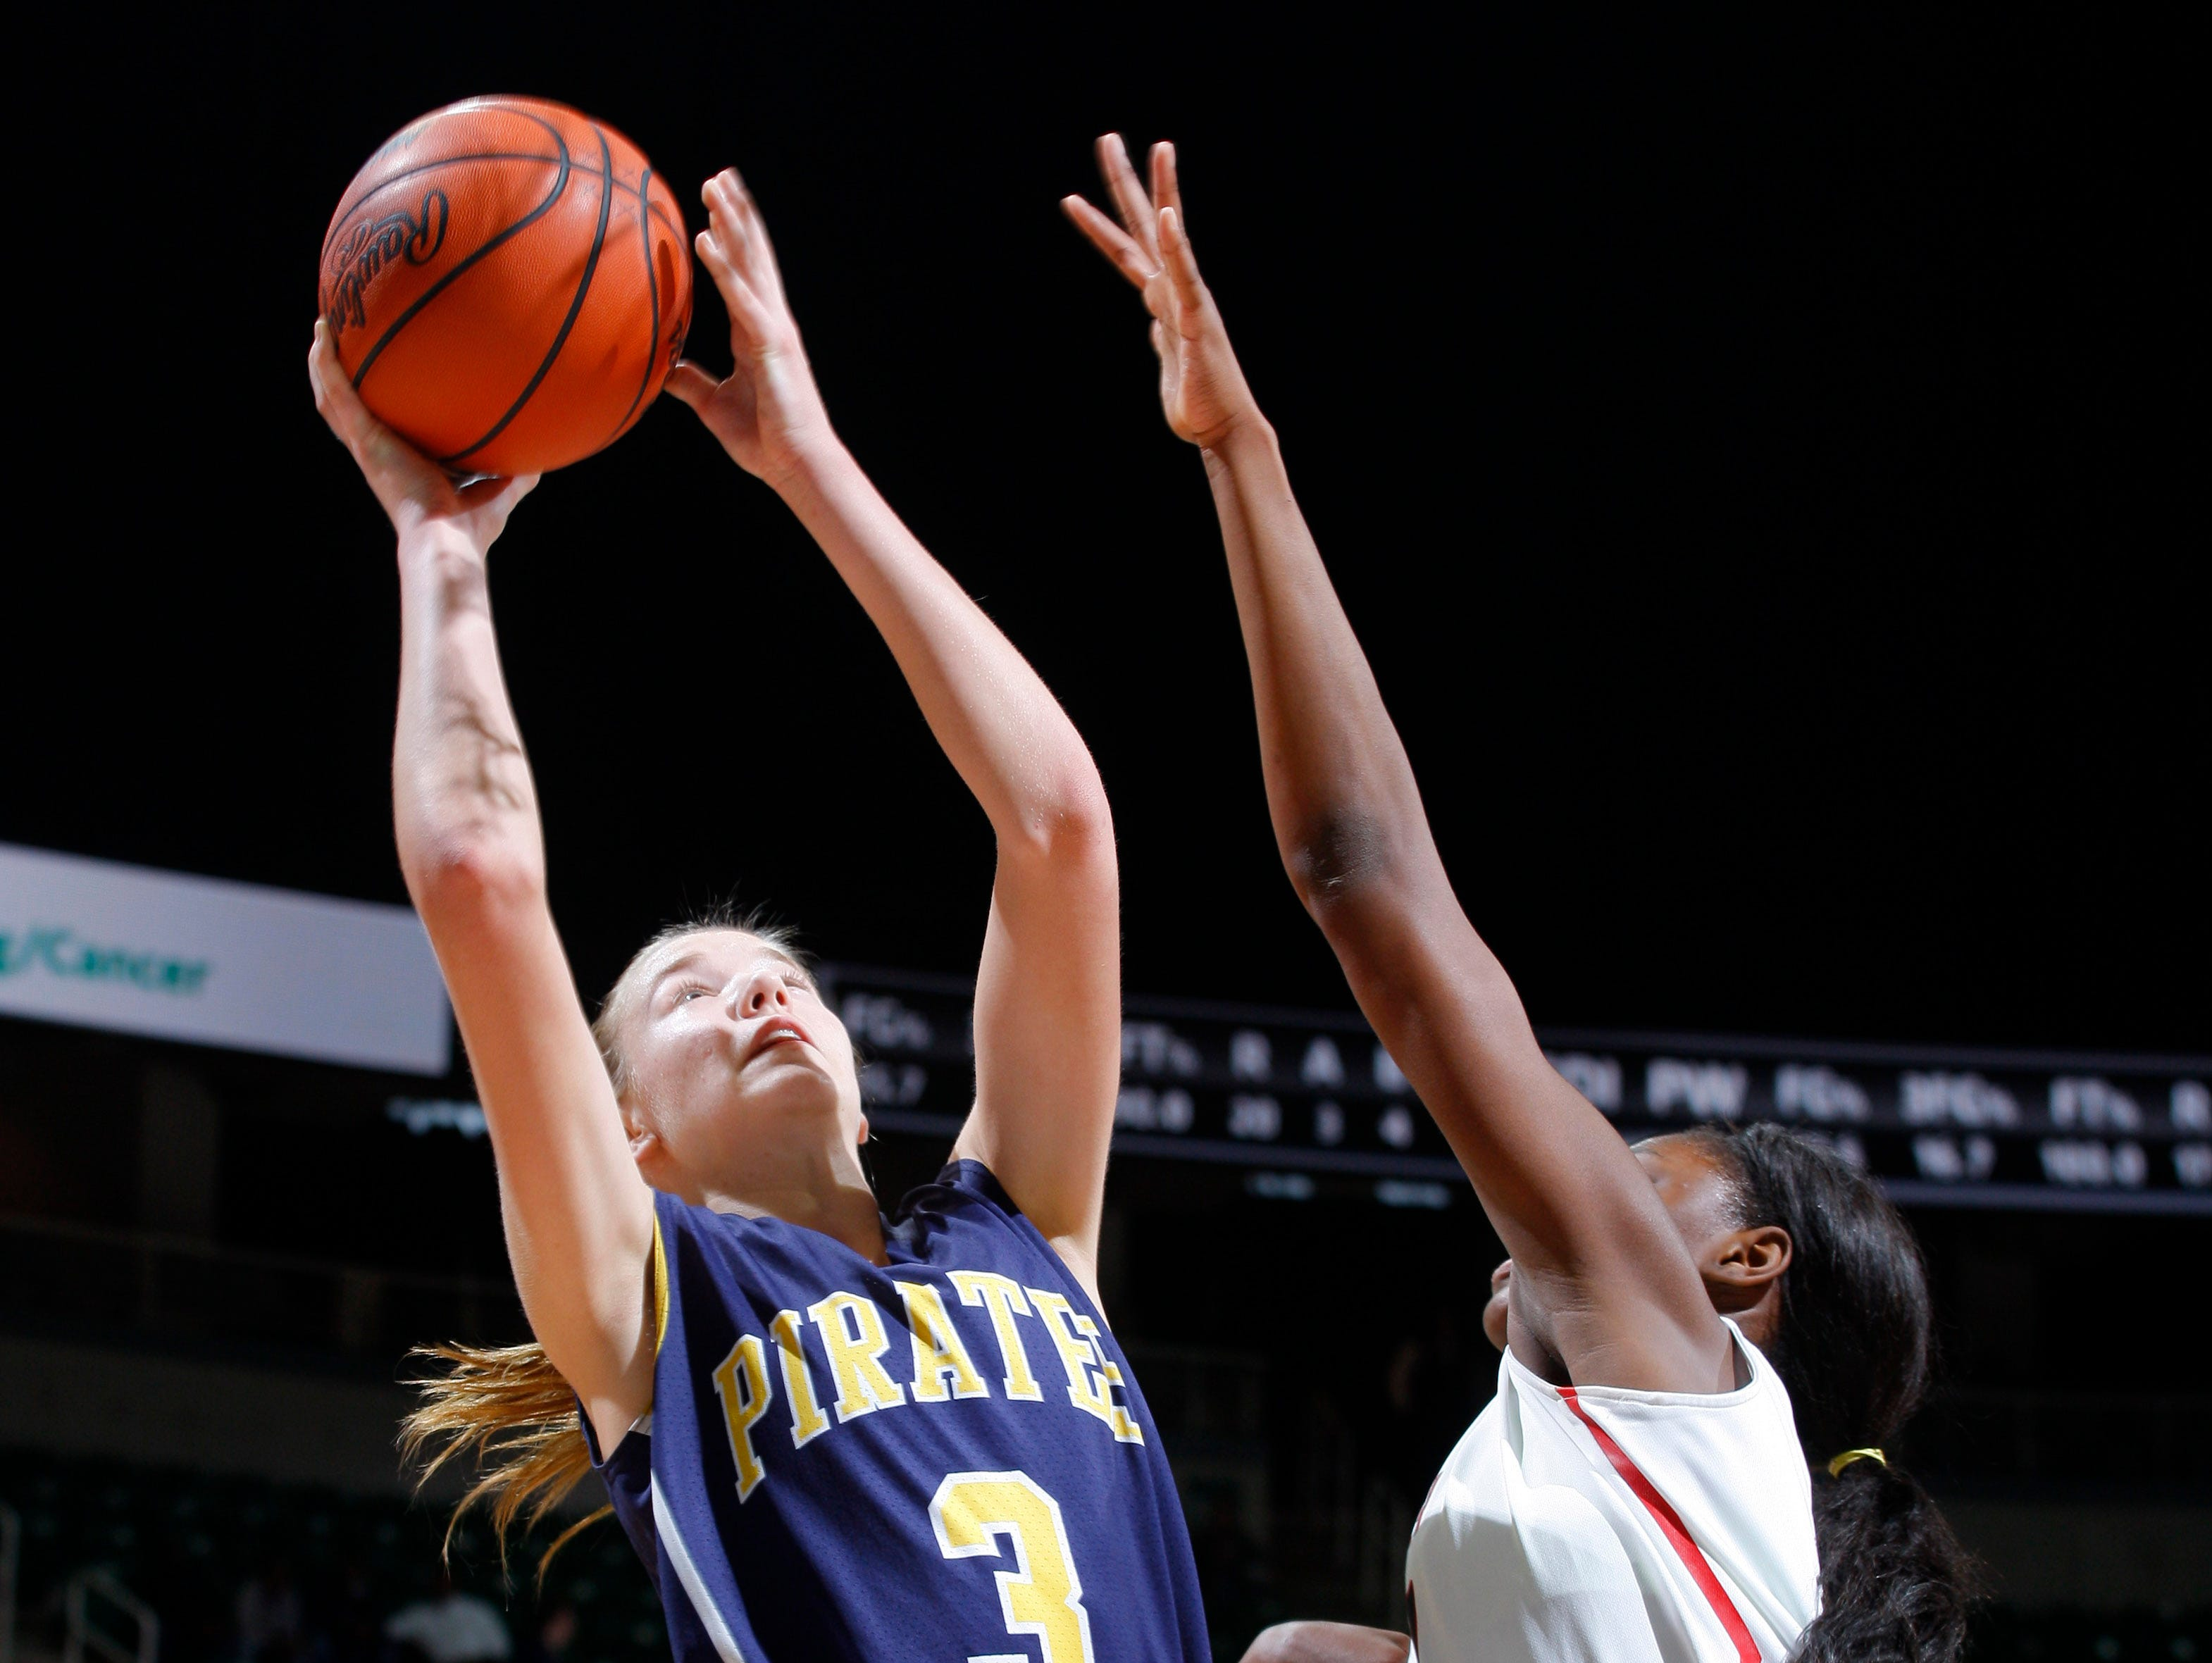 Pewamo-Westphalia's Hannah Spitzley, left, shoots against Detroit Edison's Ariel Jenkins during their MHSAA Class C championship game, Saturday, March 18, 2017, in East Lansing, Mich. P-W fell 46-44.